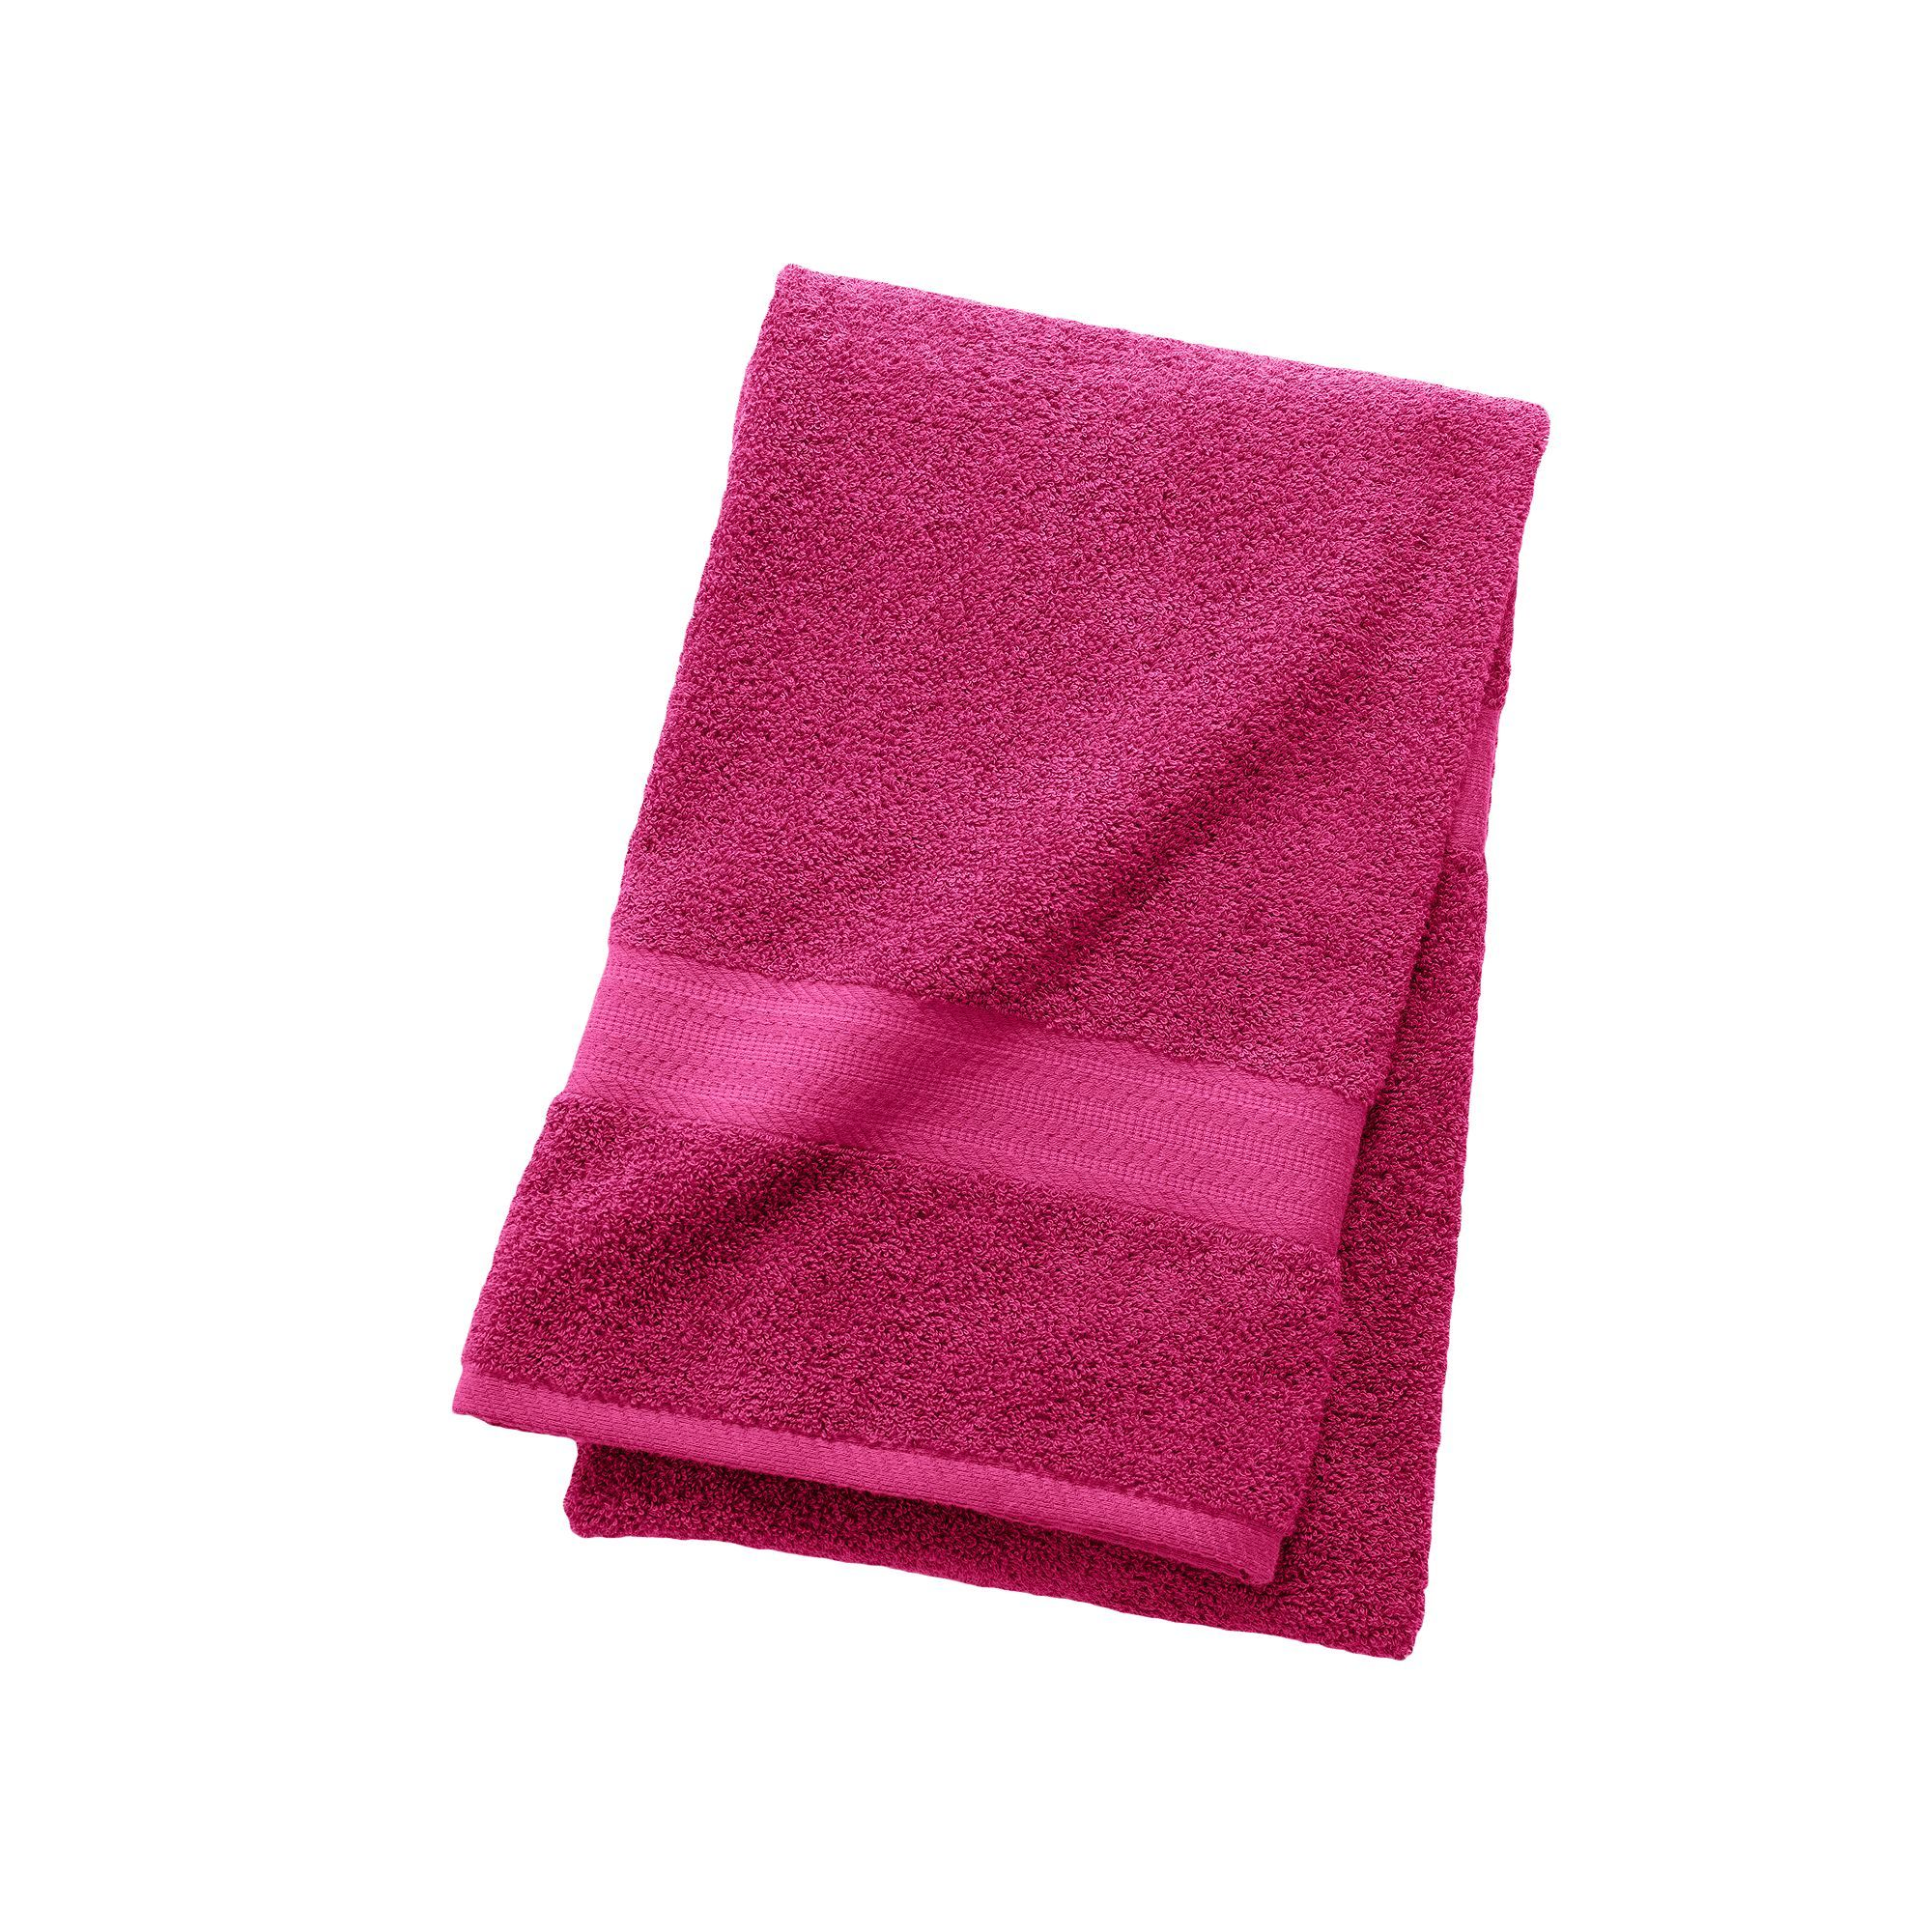 The Big One Solid Bath Towel Pink In 2019 Products Bath